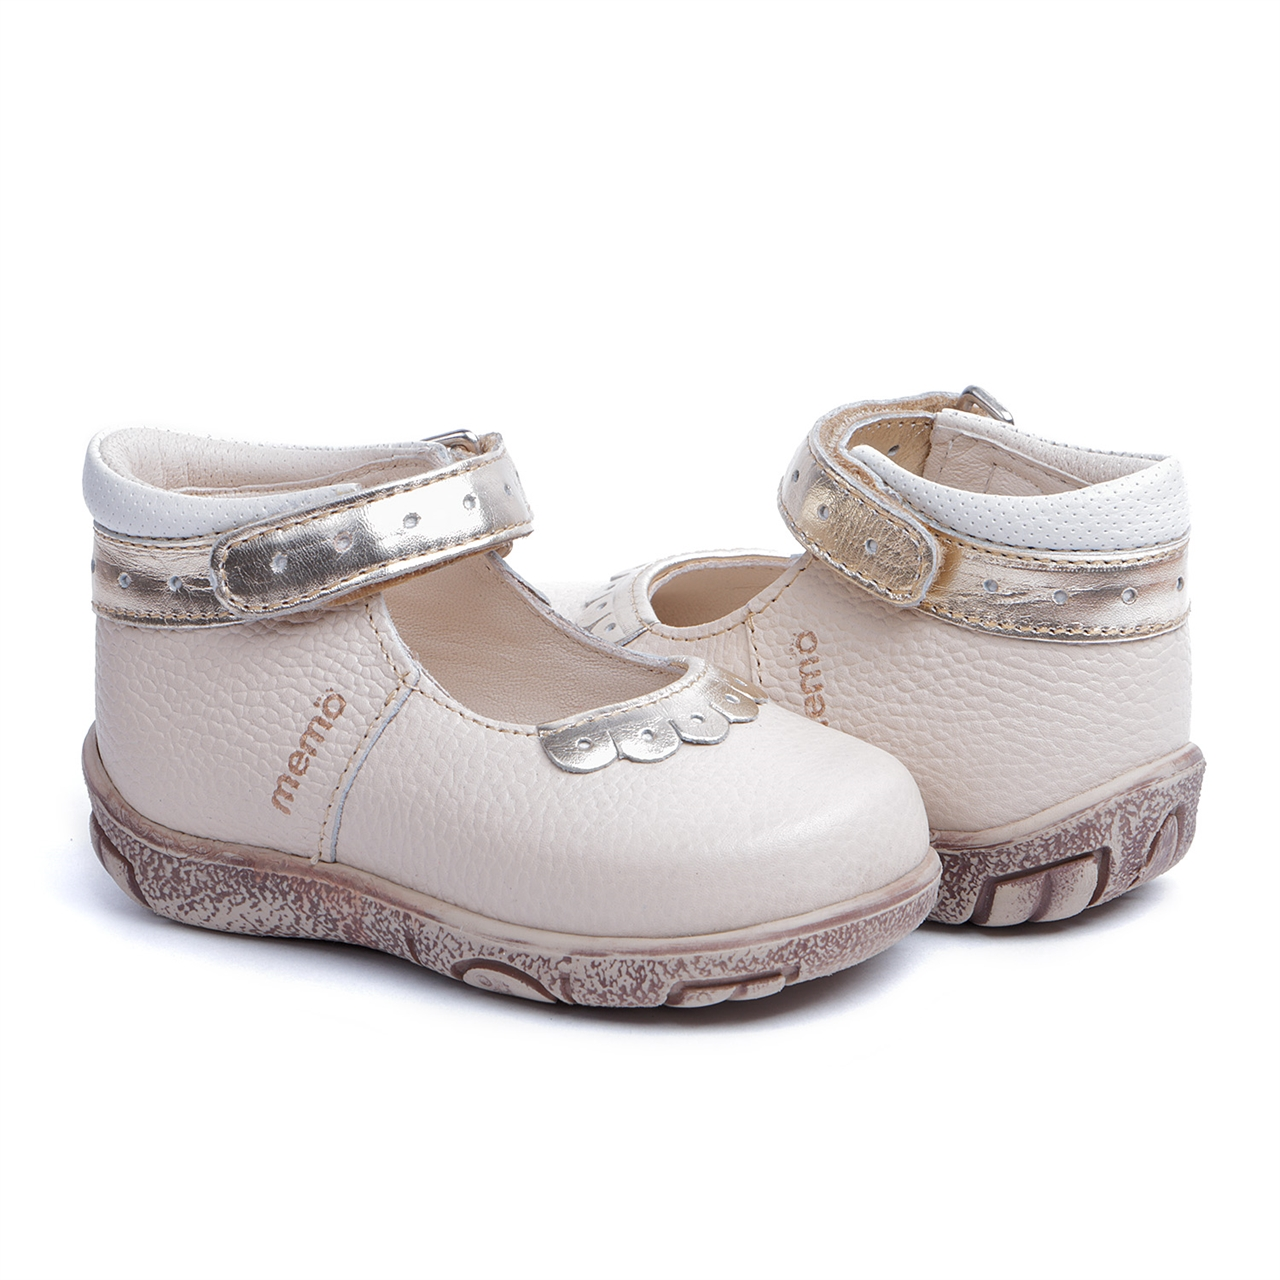 Memo Shoes. Memo Fiona 3FD Beige Infant & Toddler Girl ...Orthopedic Shoes For Kids